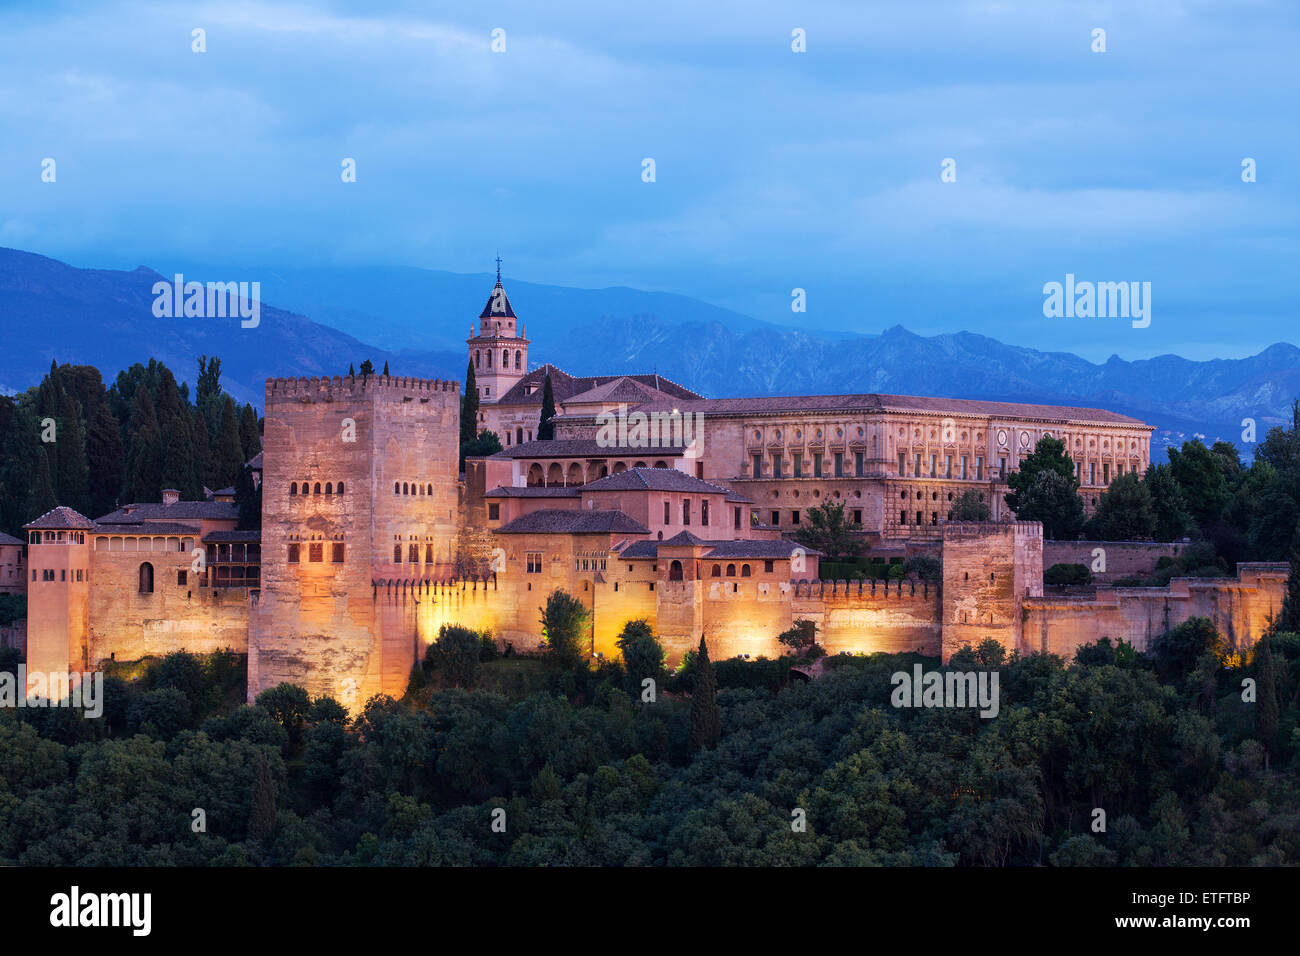 The Alhambra, Granada Moorish palace Andalucia, Spain - Stock Image